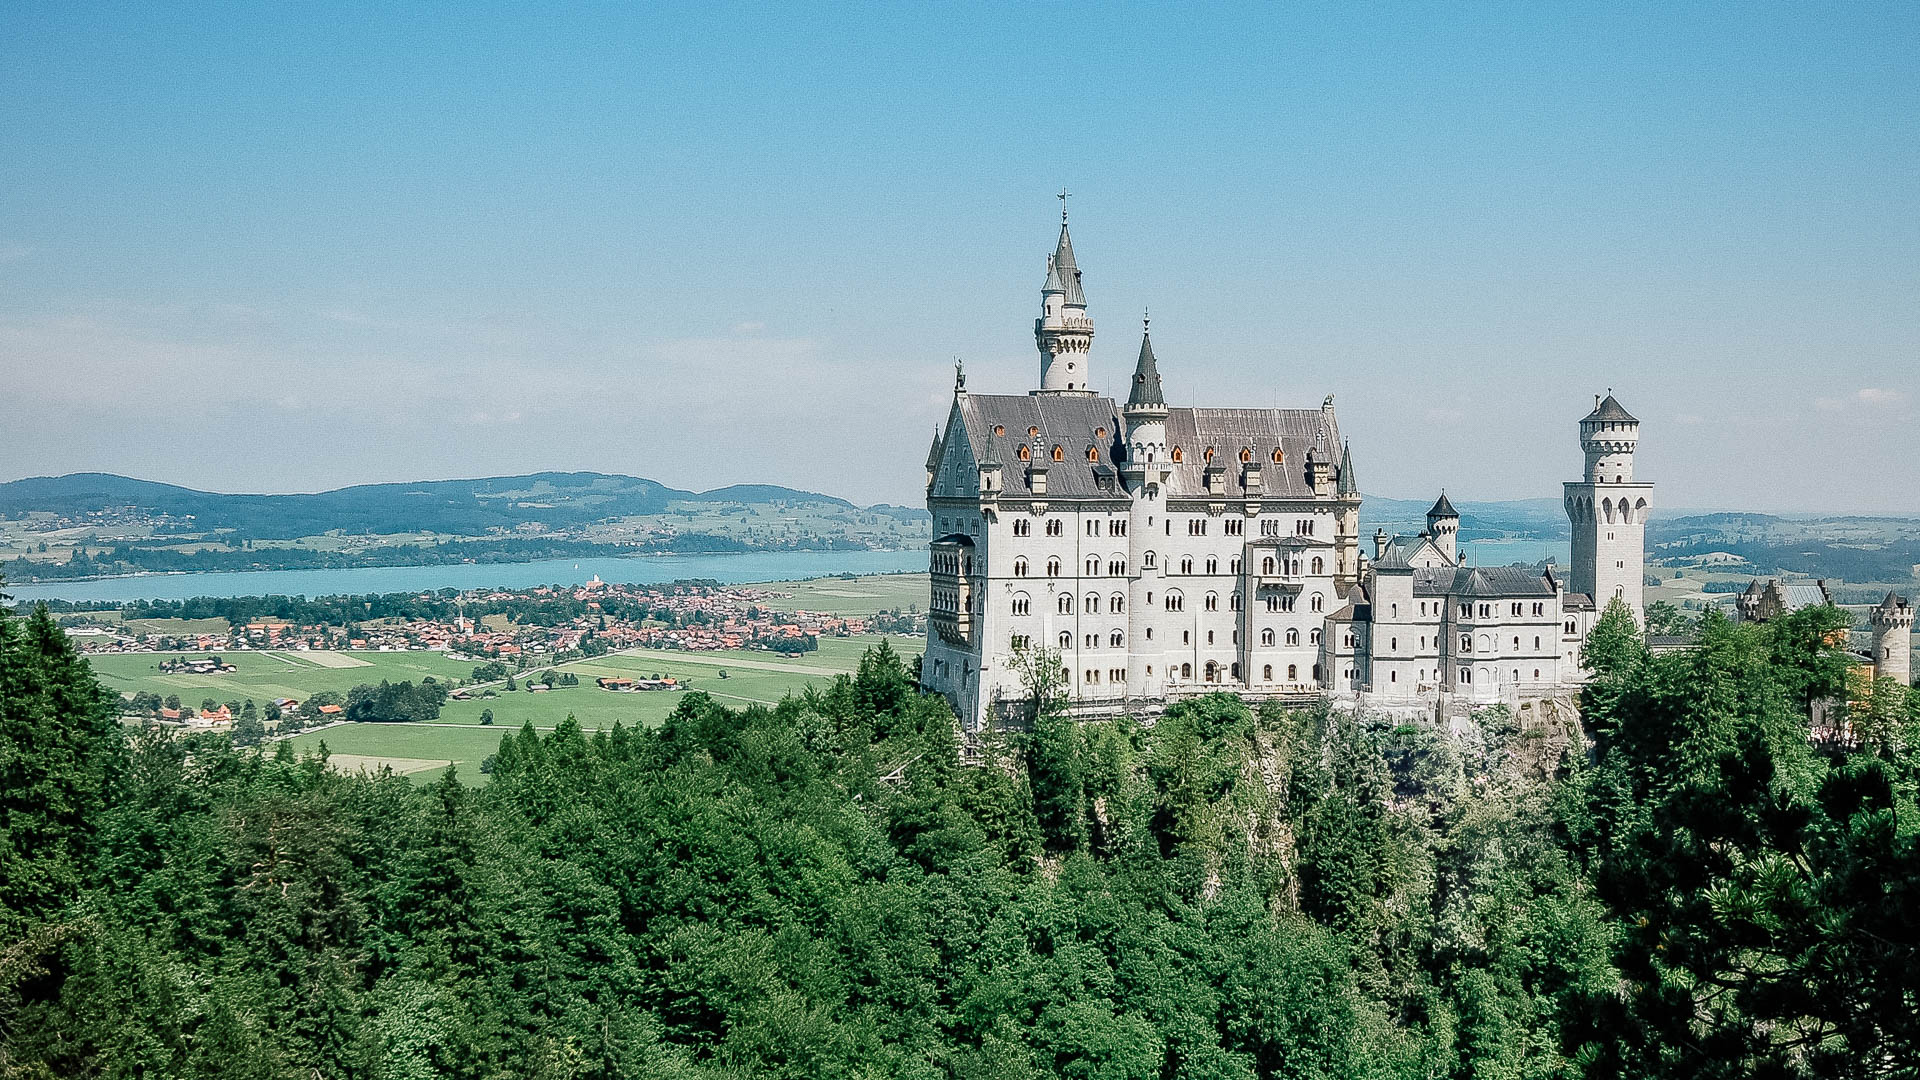 Neuschwanstein, Fussen, Germany|klyuen travel photography